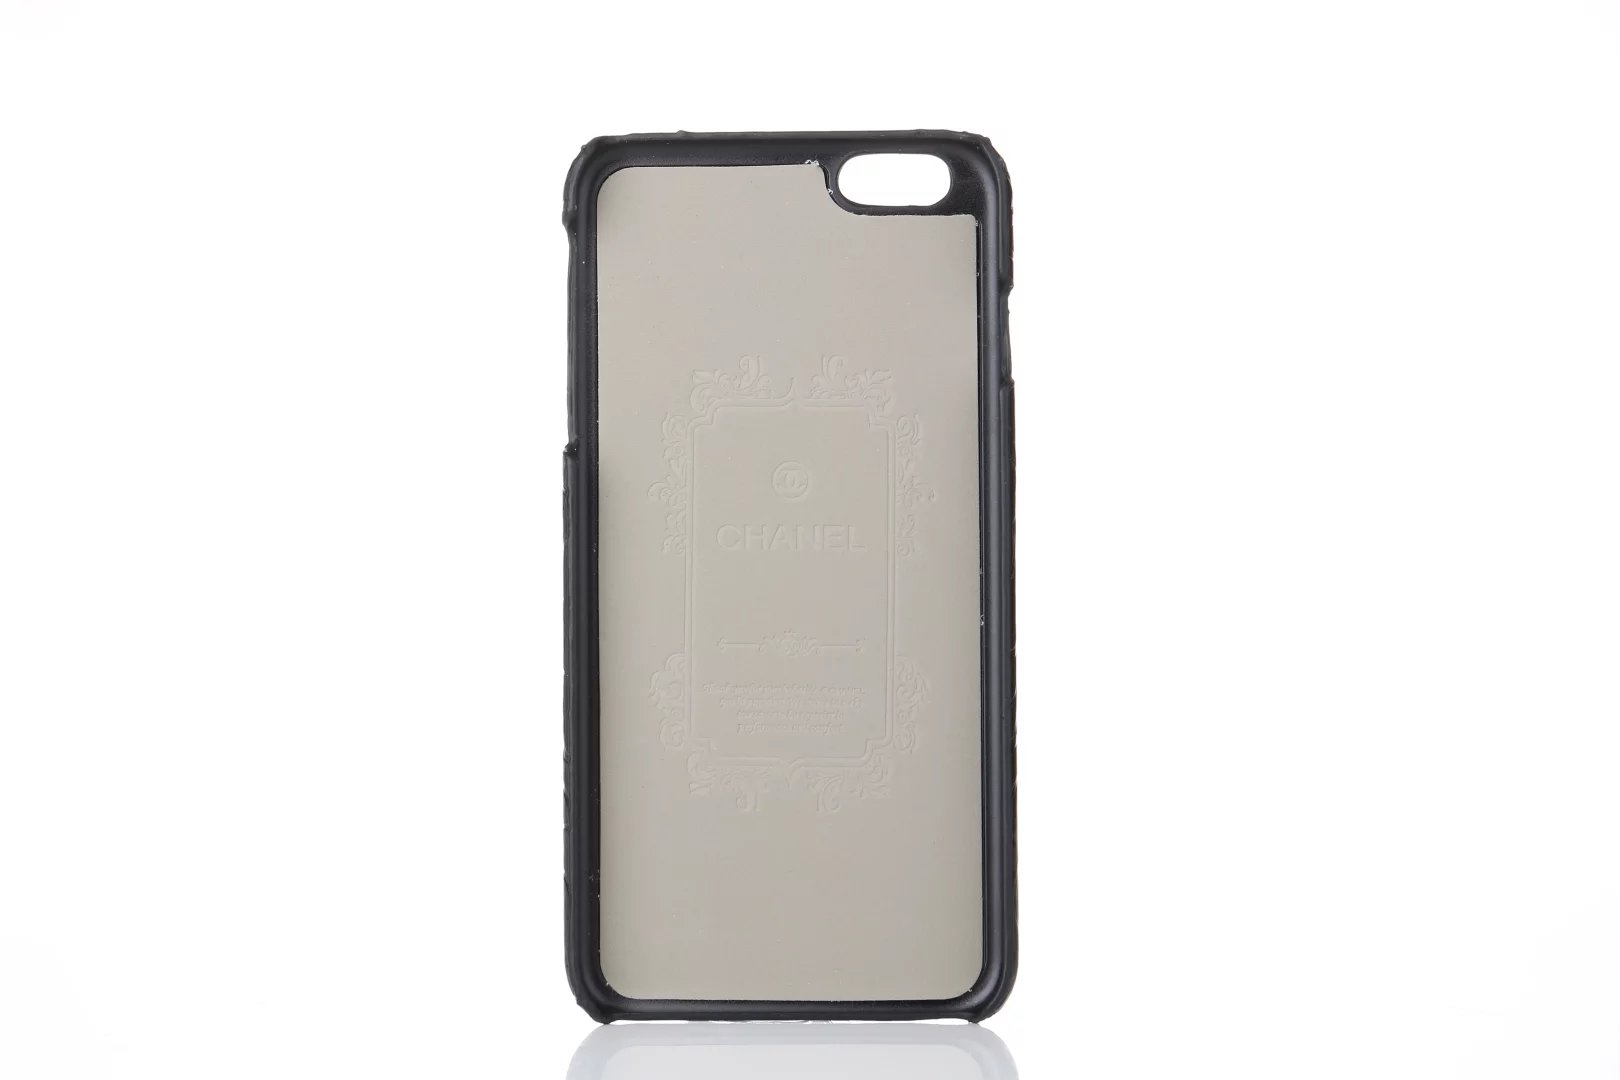 design case iphone 6s 6s iphone cover fashion iphone6s case design case iphone 6s case cell phone covers custom cases for iphone 6s skin covers for phones iphone cell phone cases apple iphone 6s press release